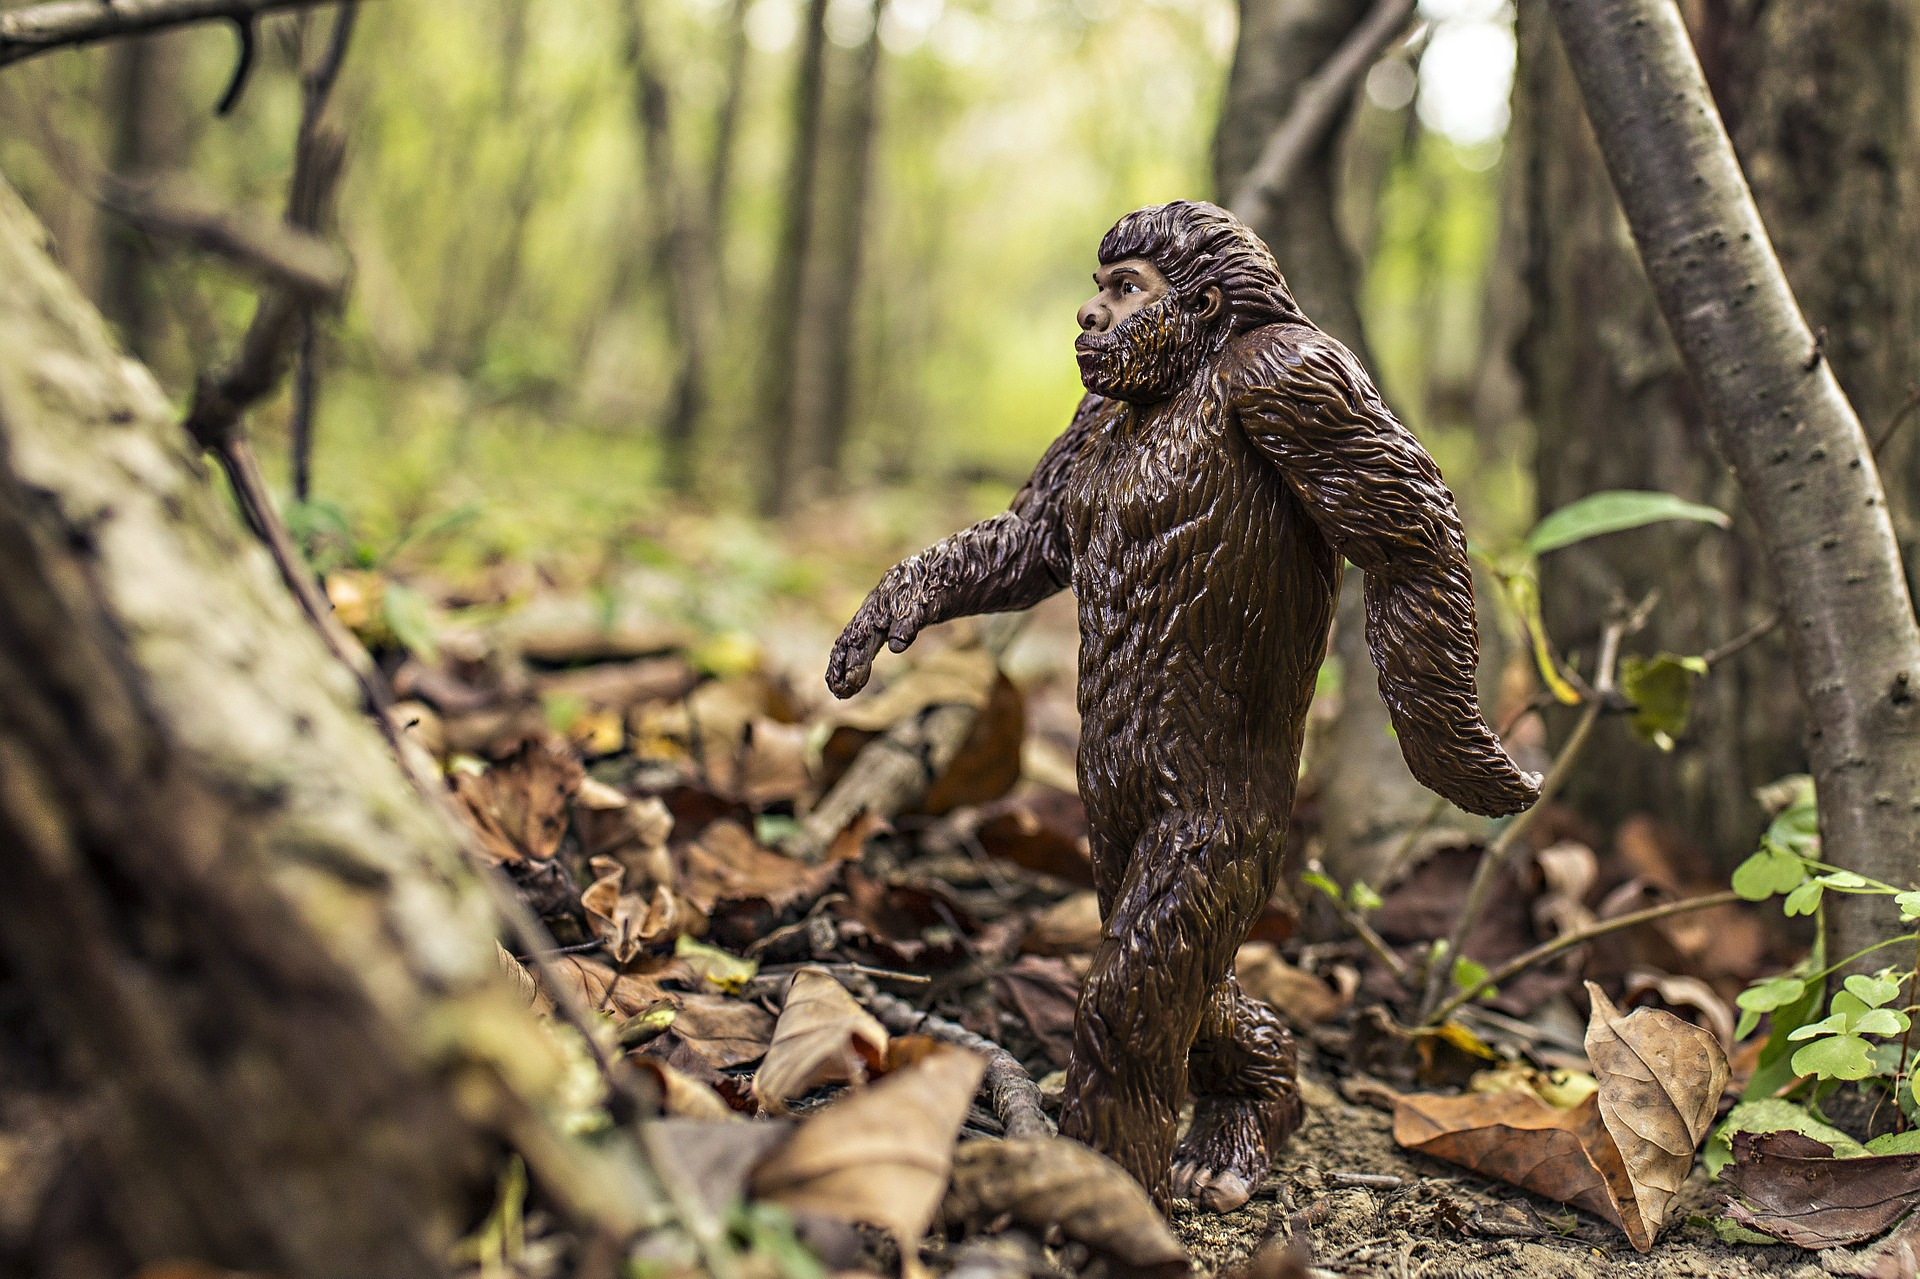 bigfoot-542546_1920